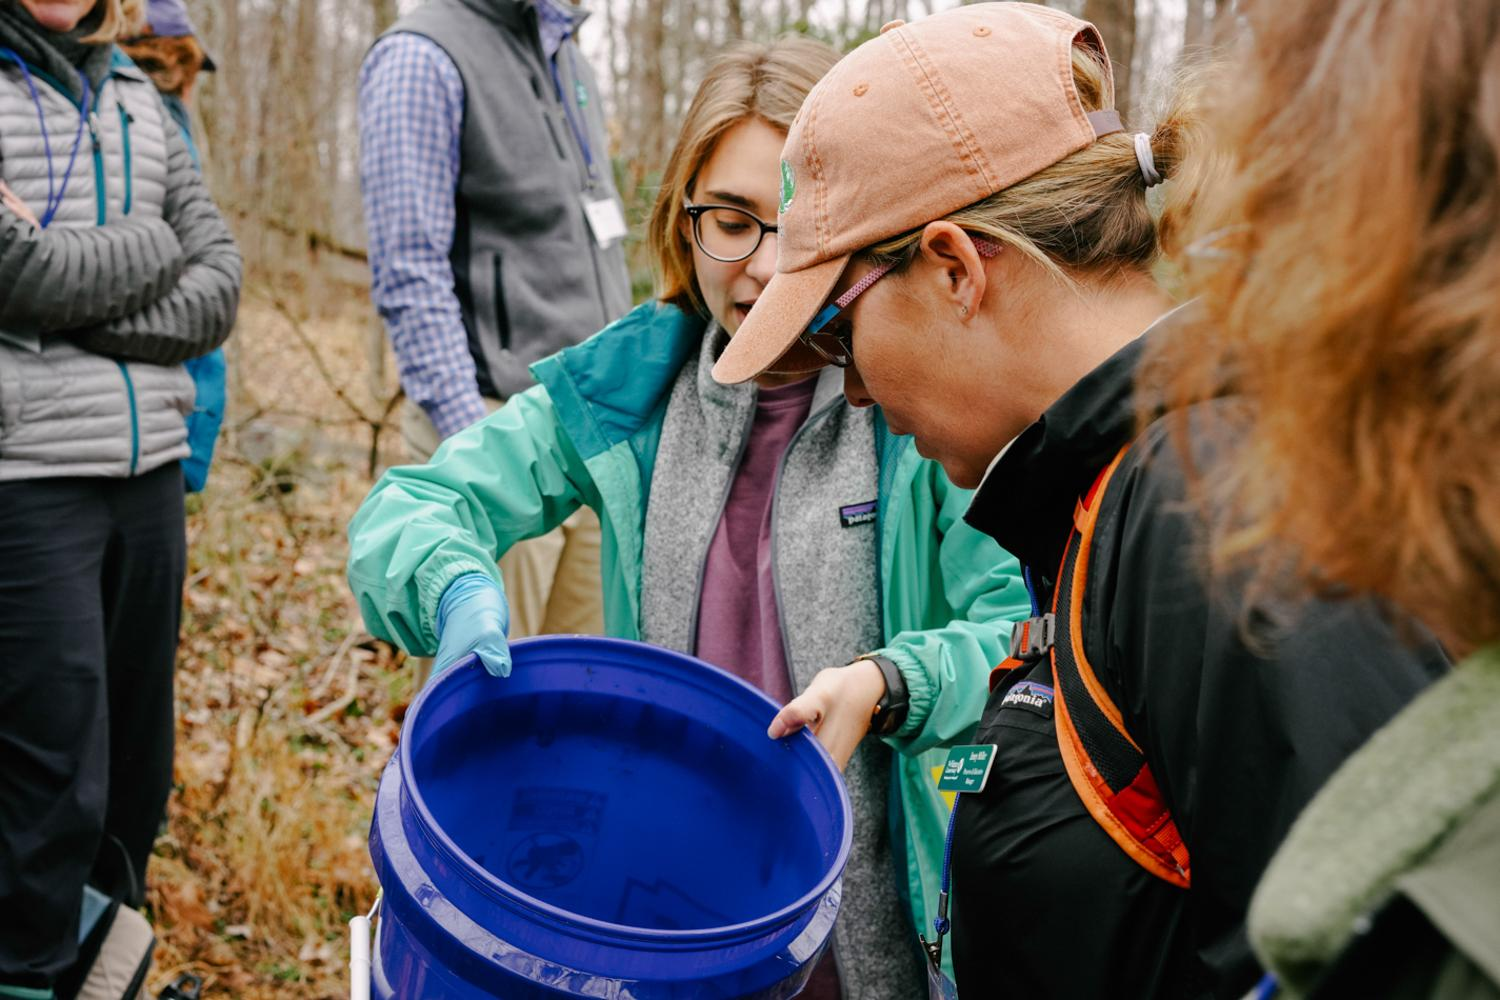 Student Biology leader and senior at Sweet Briar College assists Mike Hayslett with lecturing and presents unique salamander spices to the group as an example of the unique wildlife found in vernal pools, 2020.